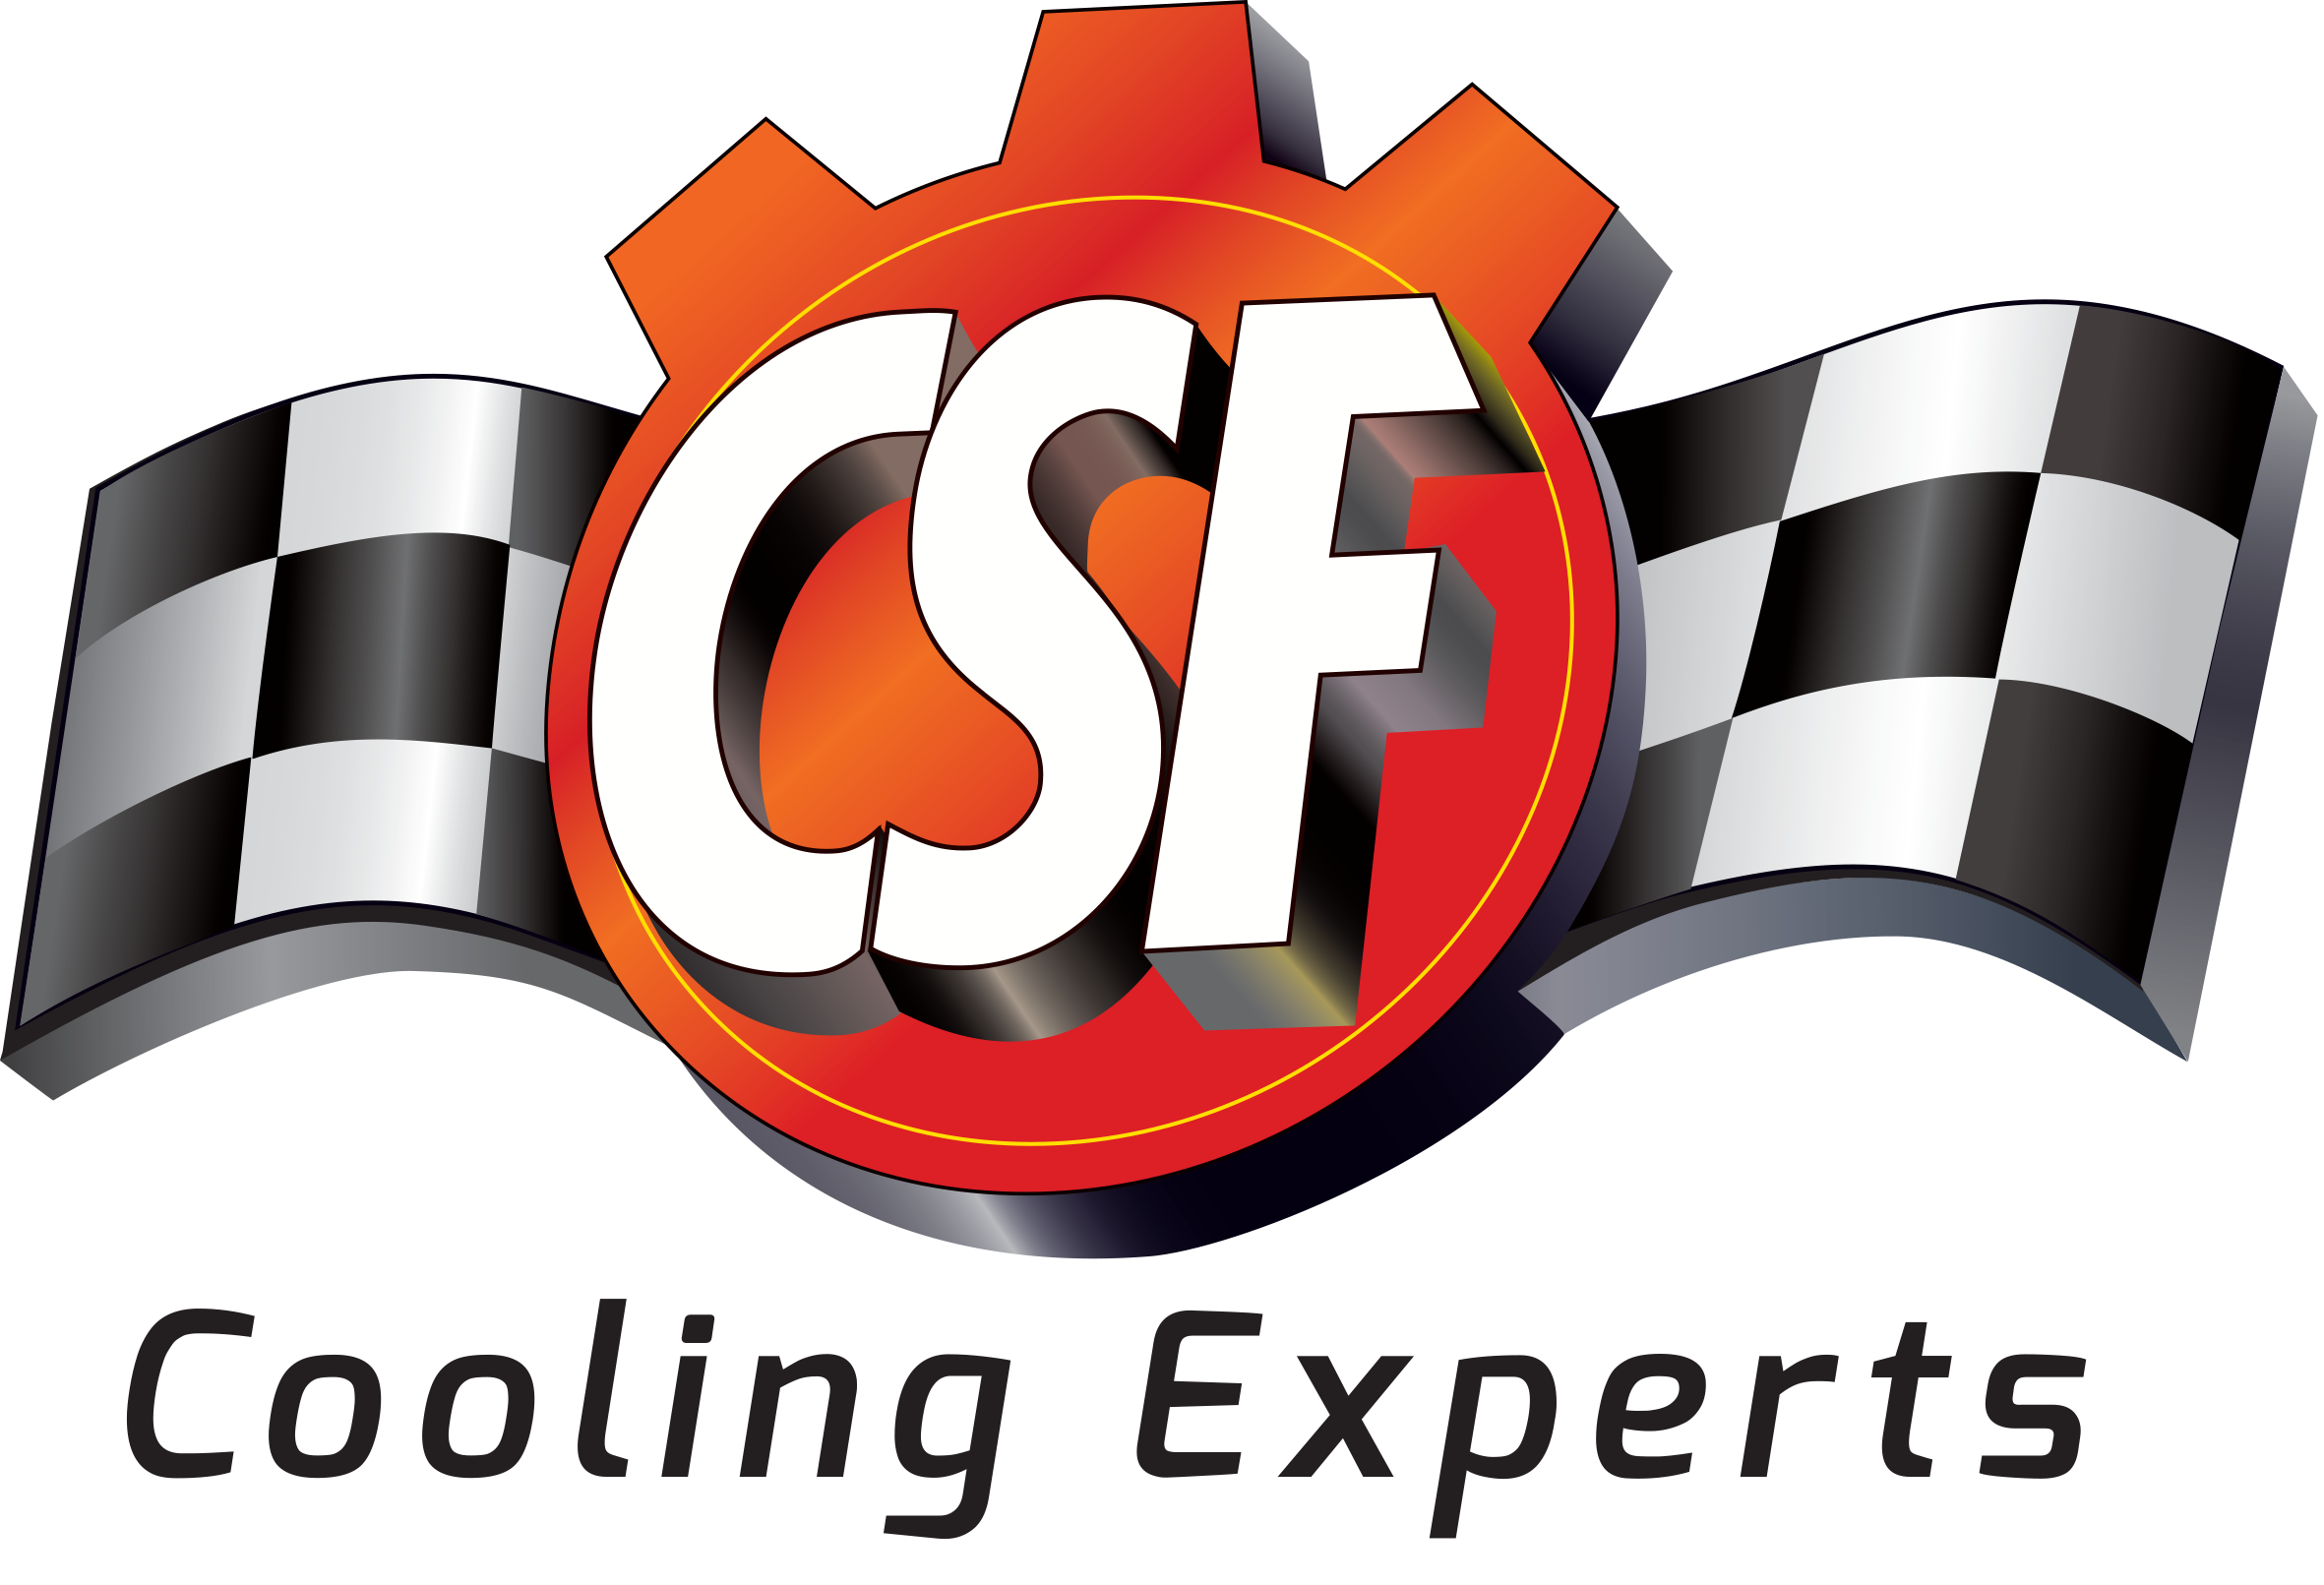 Final csf cooling new logo rsrjjn